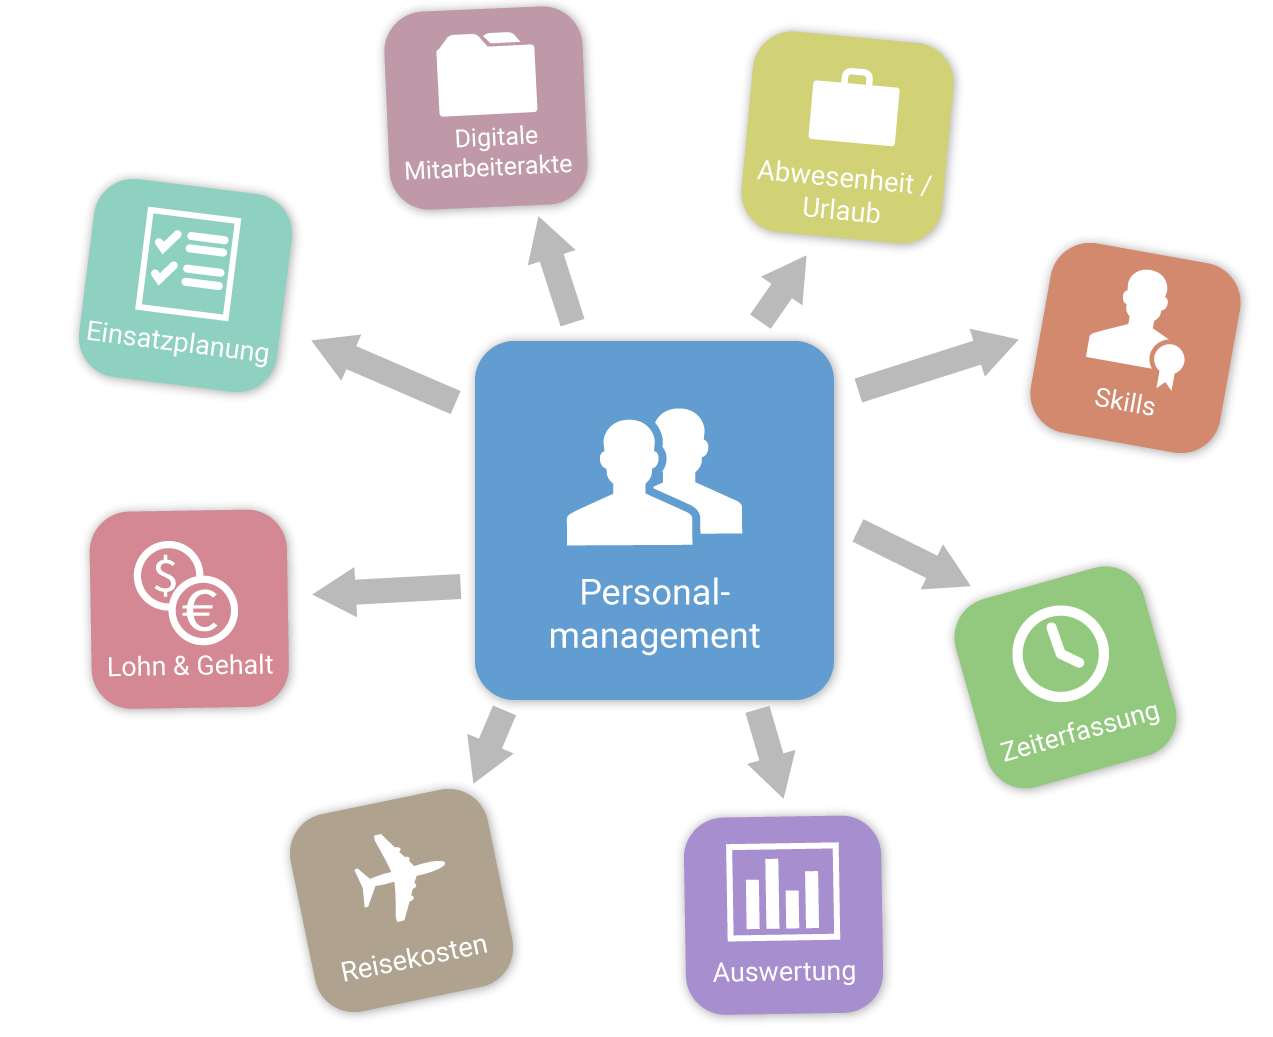 Personalmanagement in porjectfacts